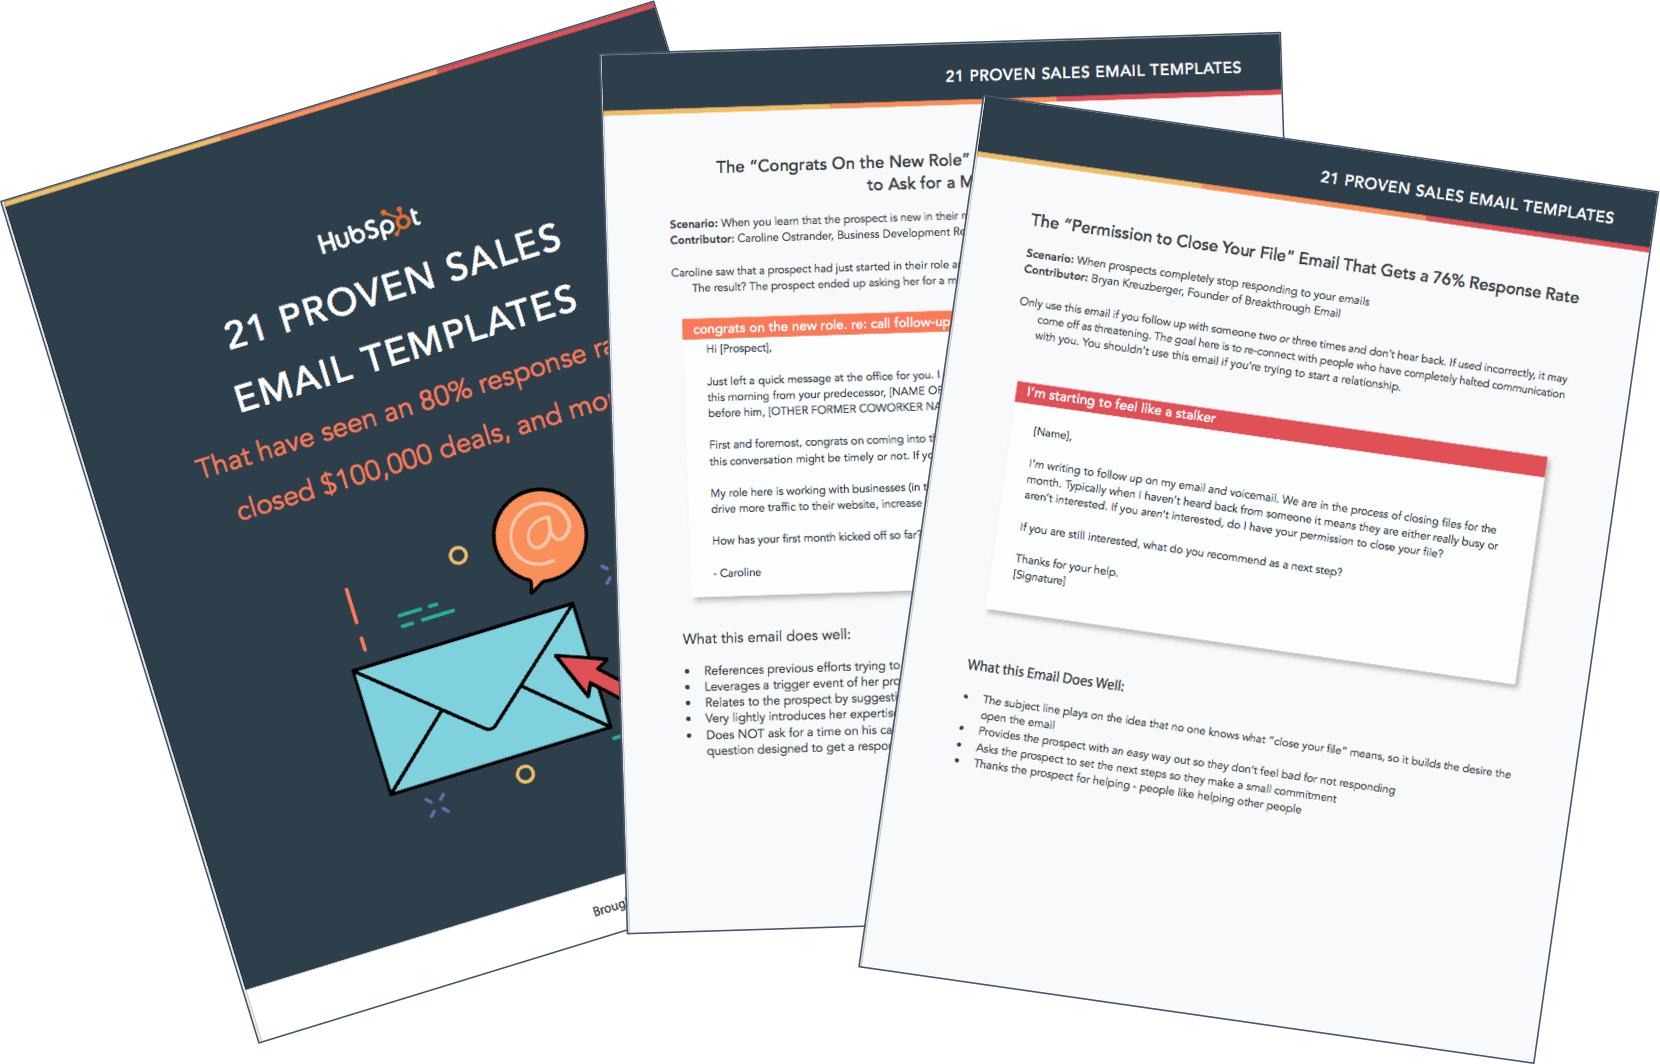 21 Proven Sales Email Templates